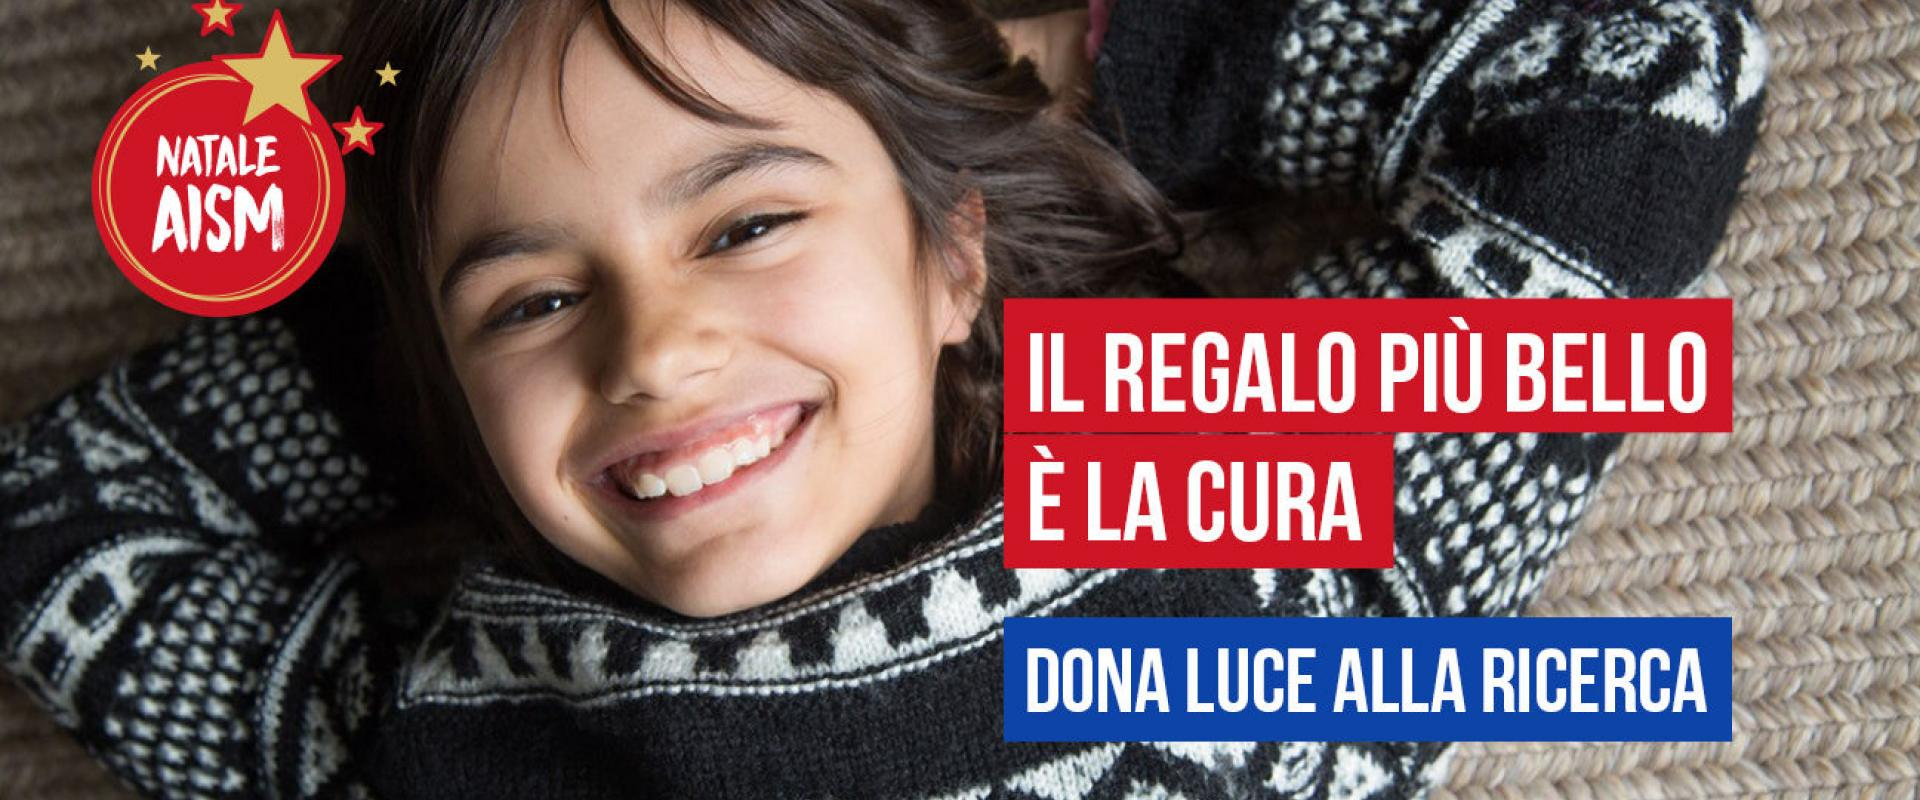 Natale AISM: dona luce alla ricerca